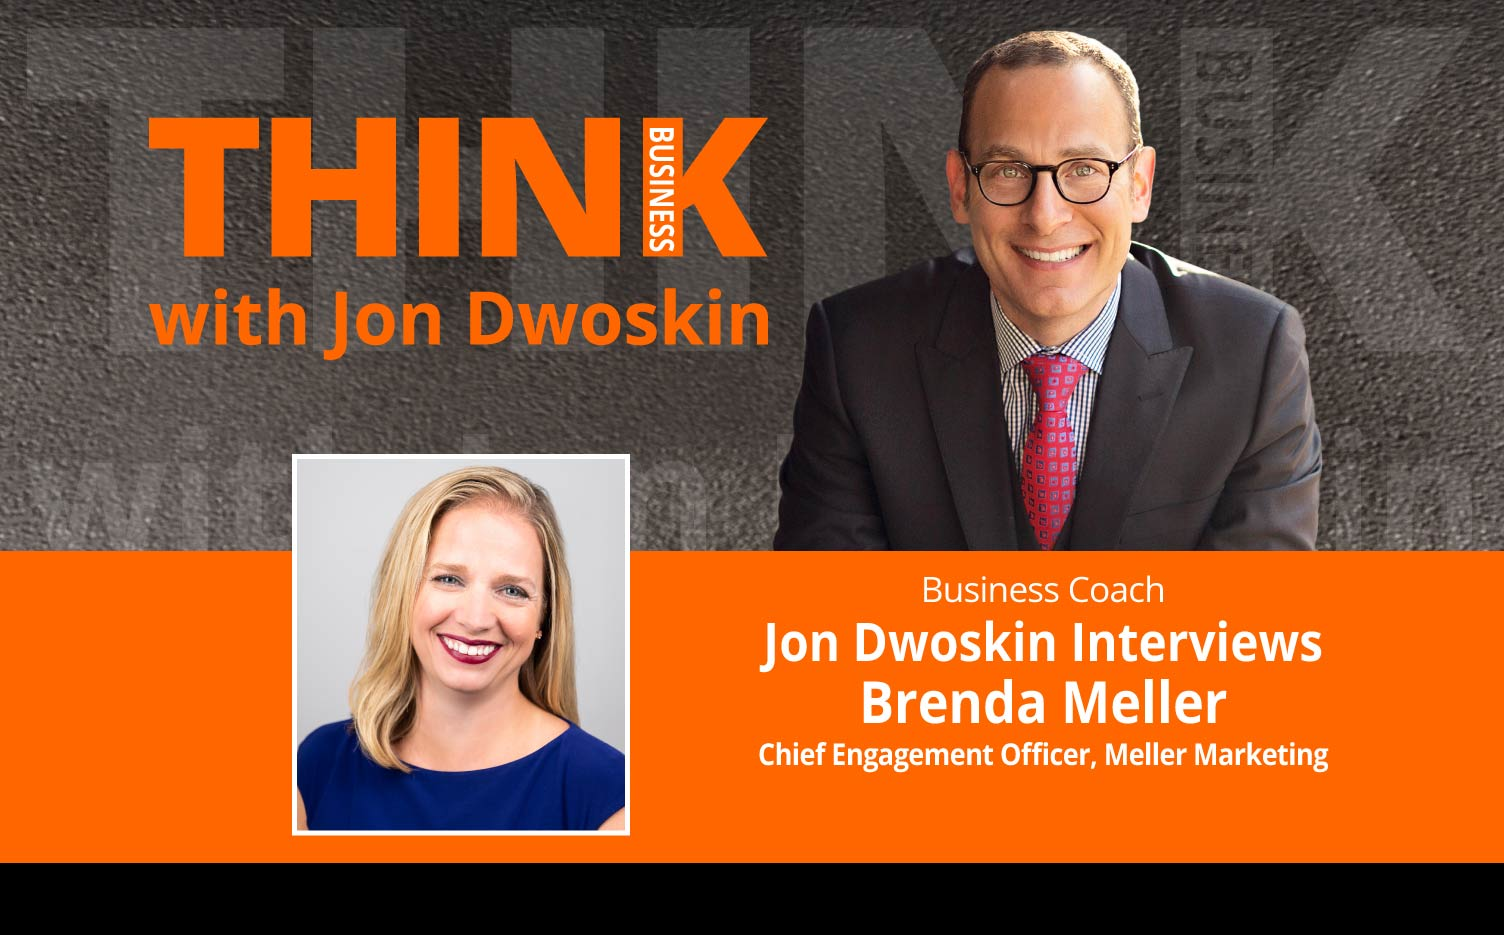 THINK Business Podcast: Jon Dwoskin Interviews Brenda Meller, Chief Engagement Officer, Meller Marketing